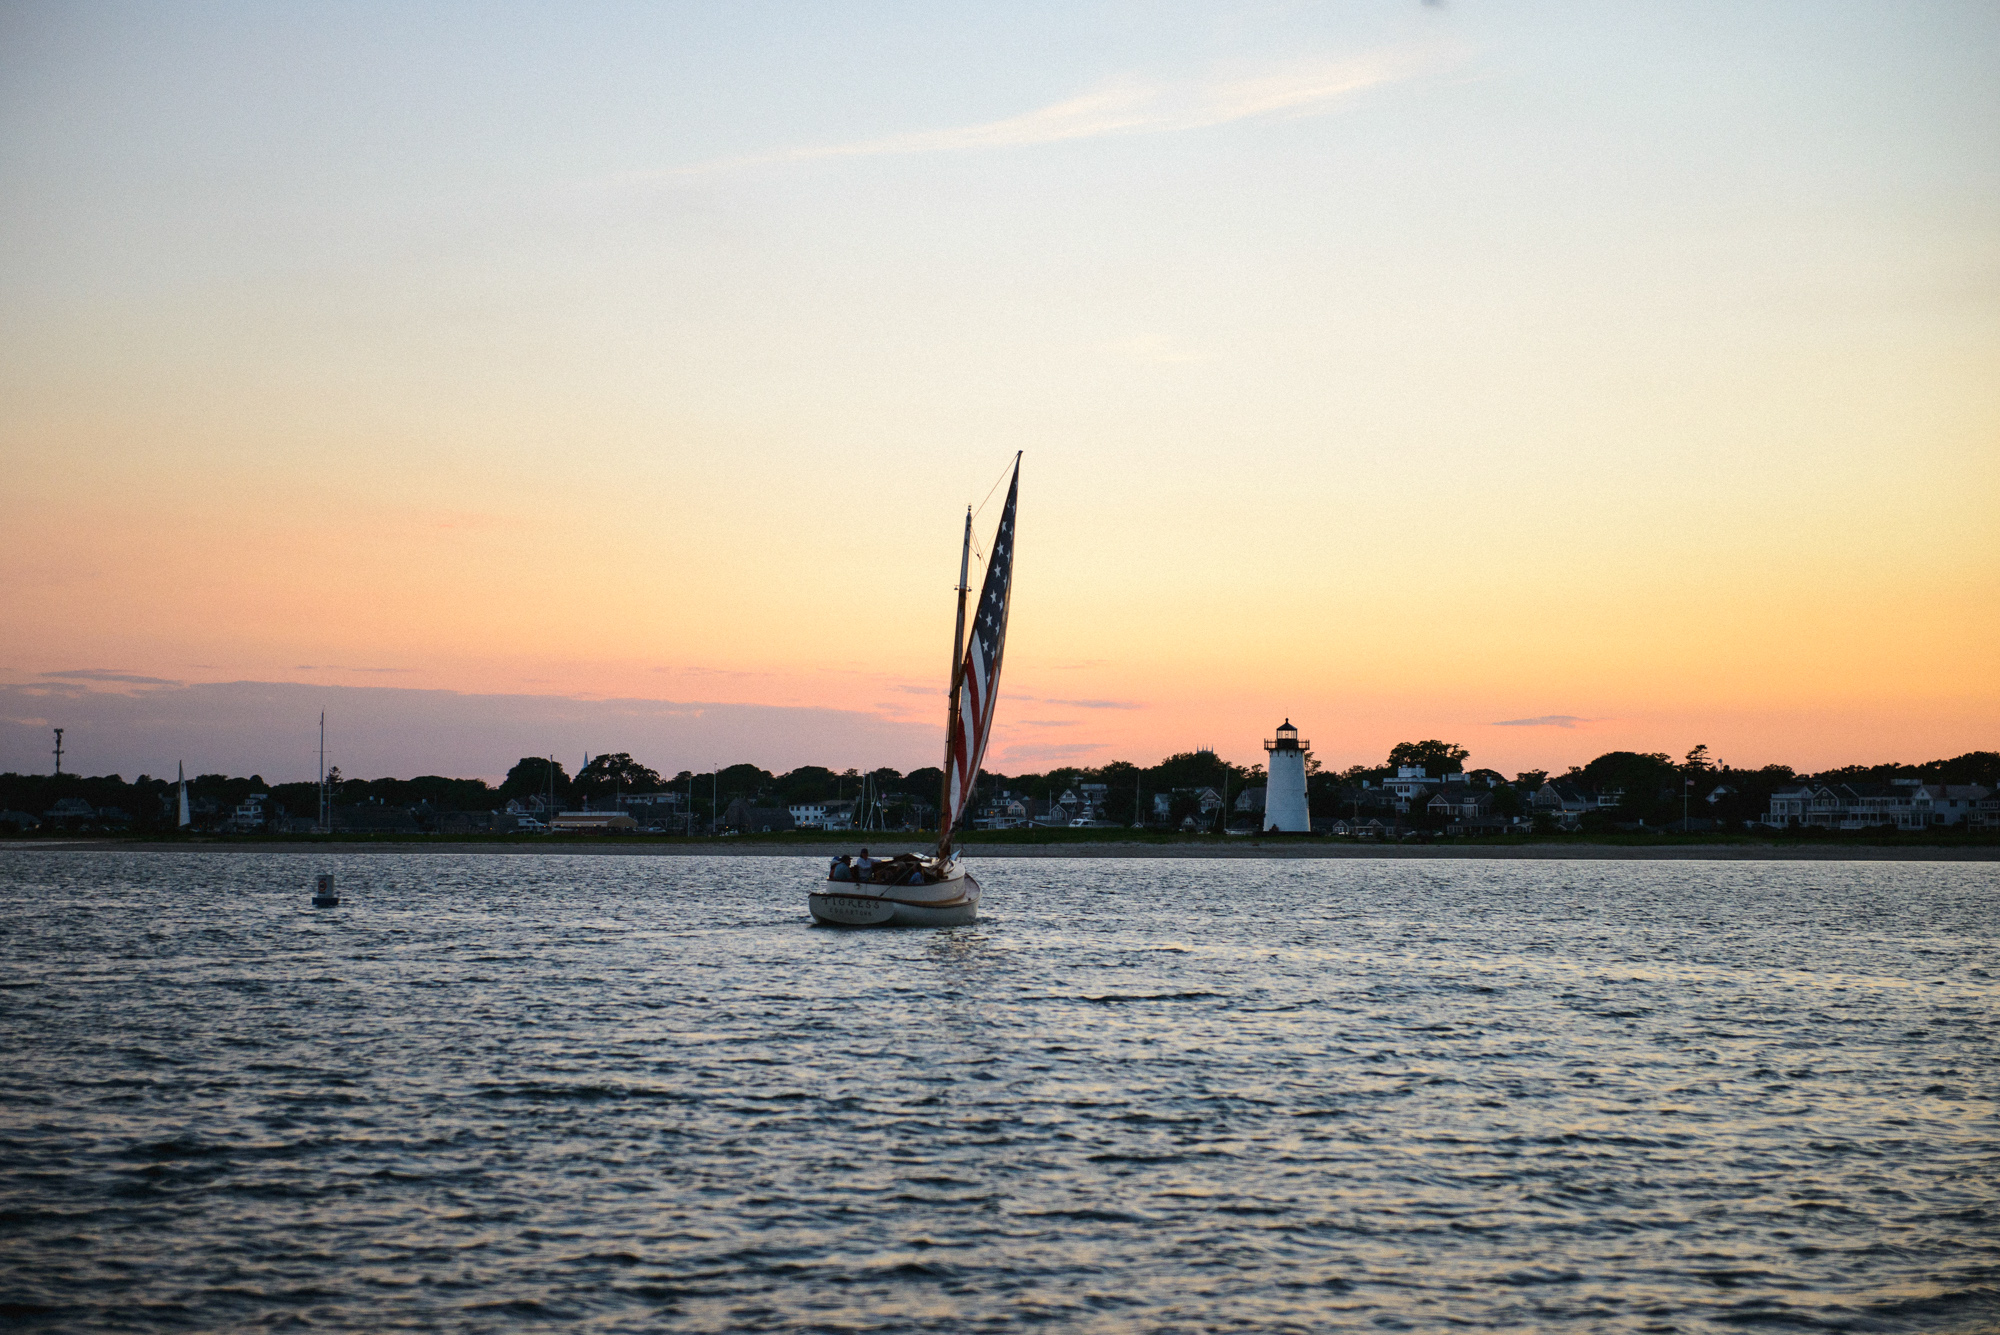 The catboat Tigress sails into the sunset near the Edgartown Lighthouse photo by David Welch Photography